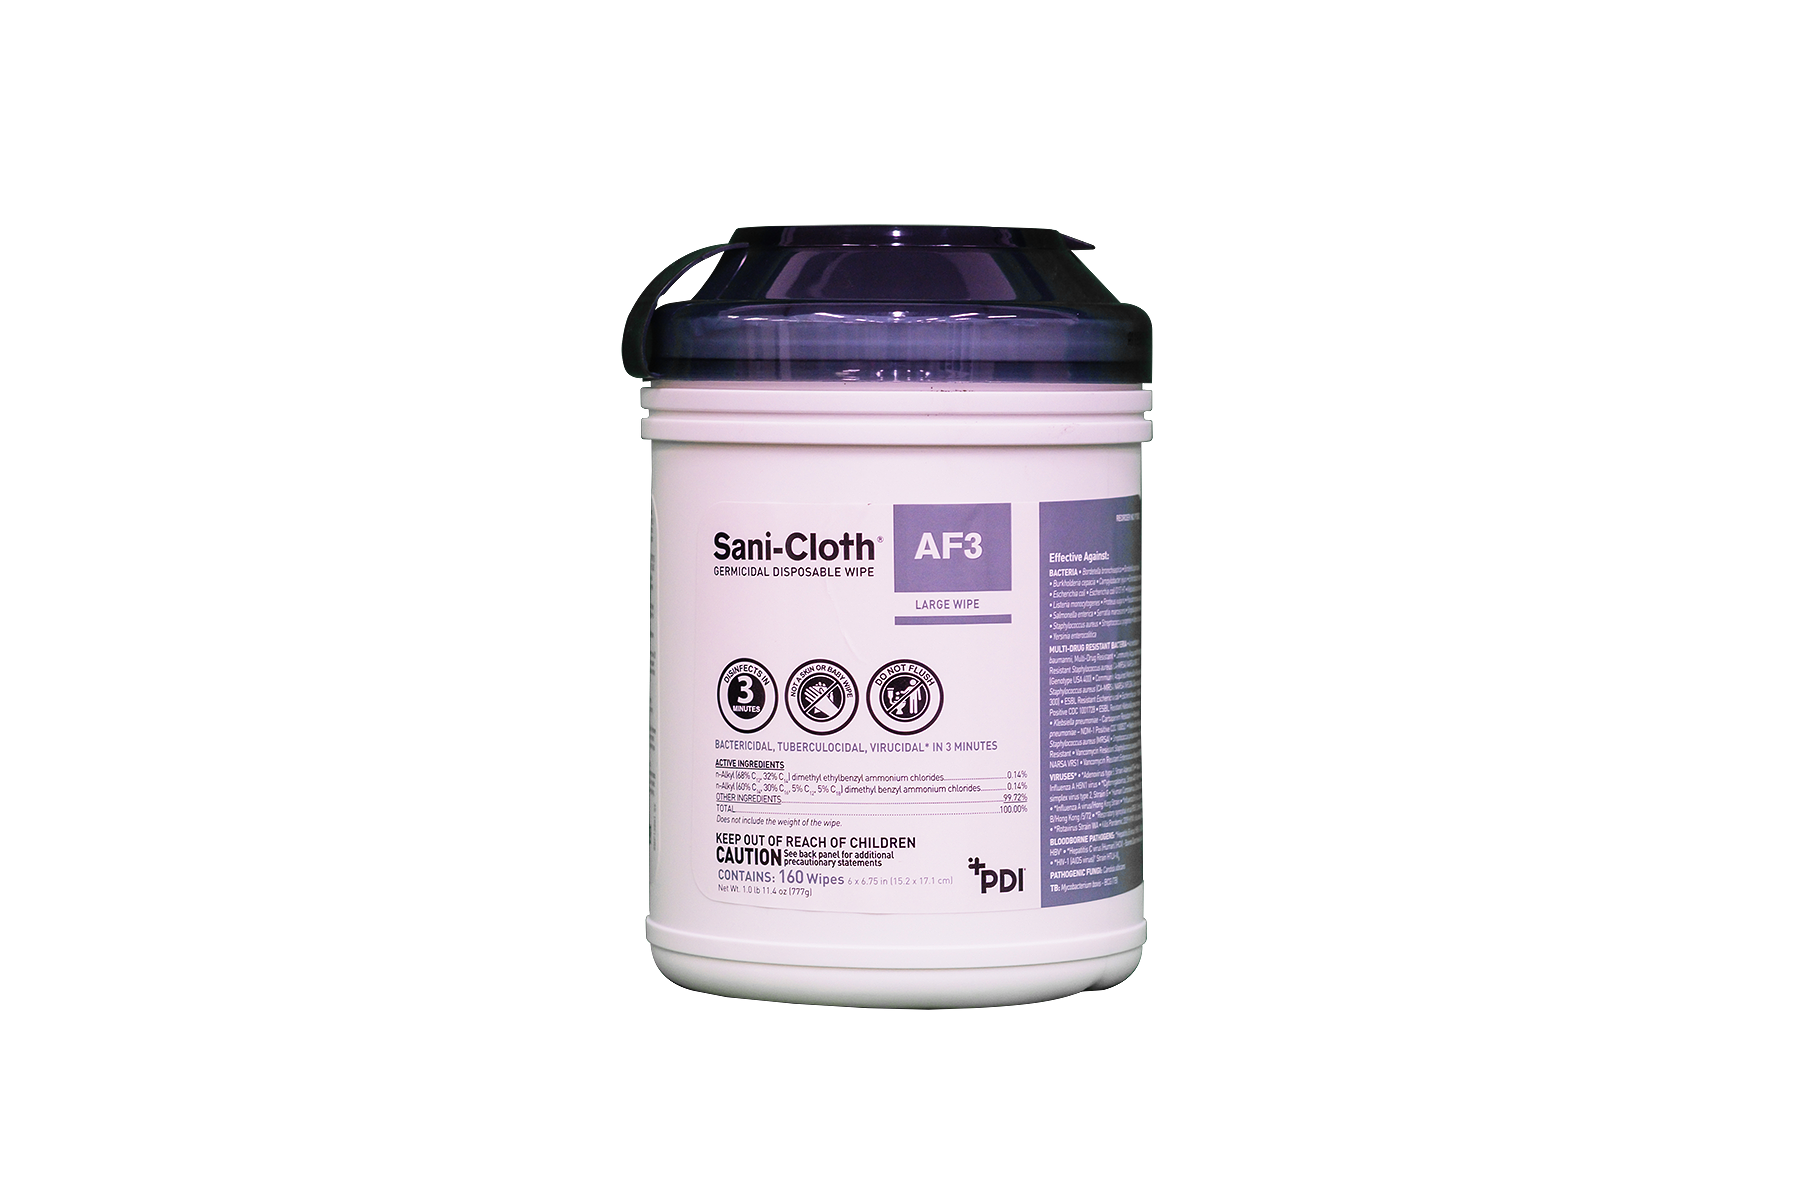 PDI Sani-Cloth Germicidal AF3 Germicidal Wipe